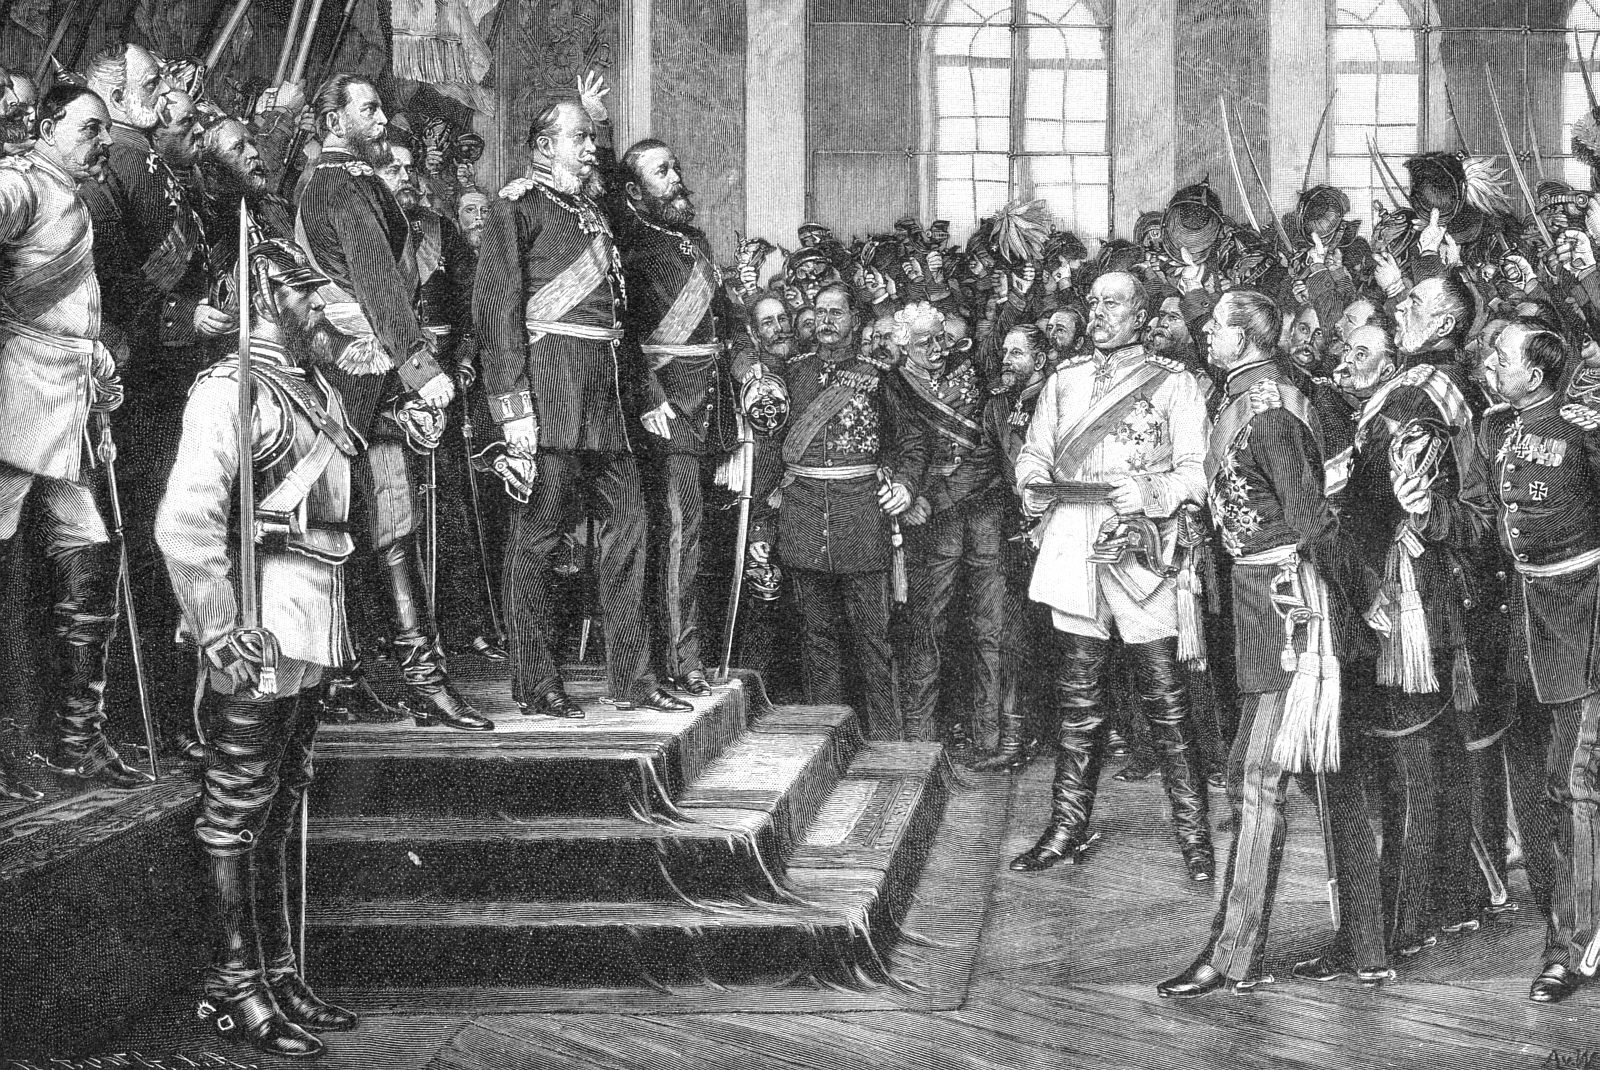 File:1871 Proclamation of the German Empire.jpg